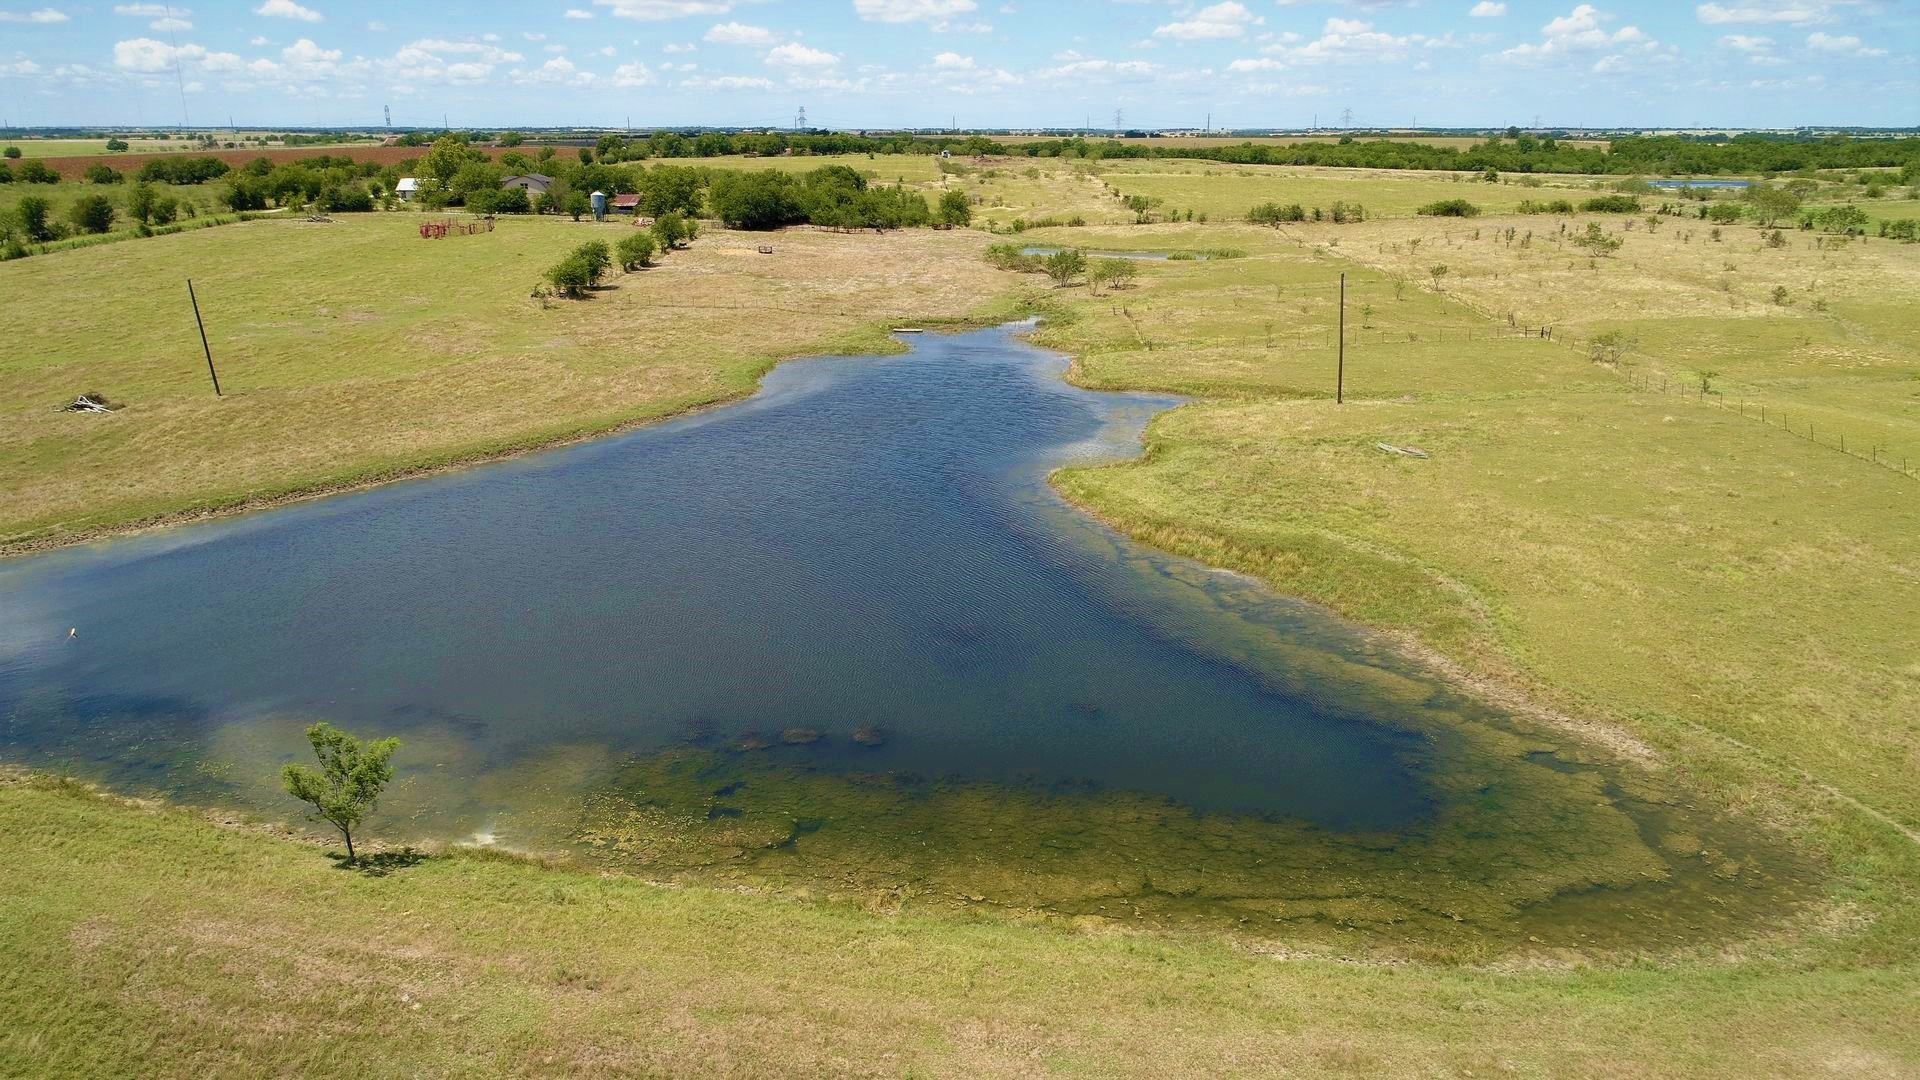 Land for Sale, Eddy, Texas, Falls County, Weekend Get a-Way!